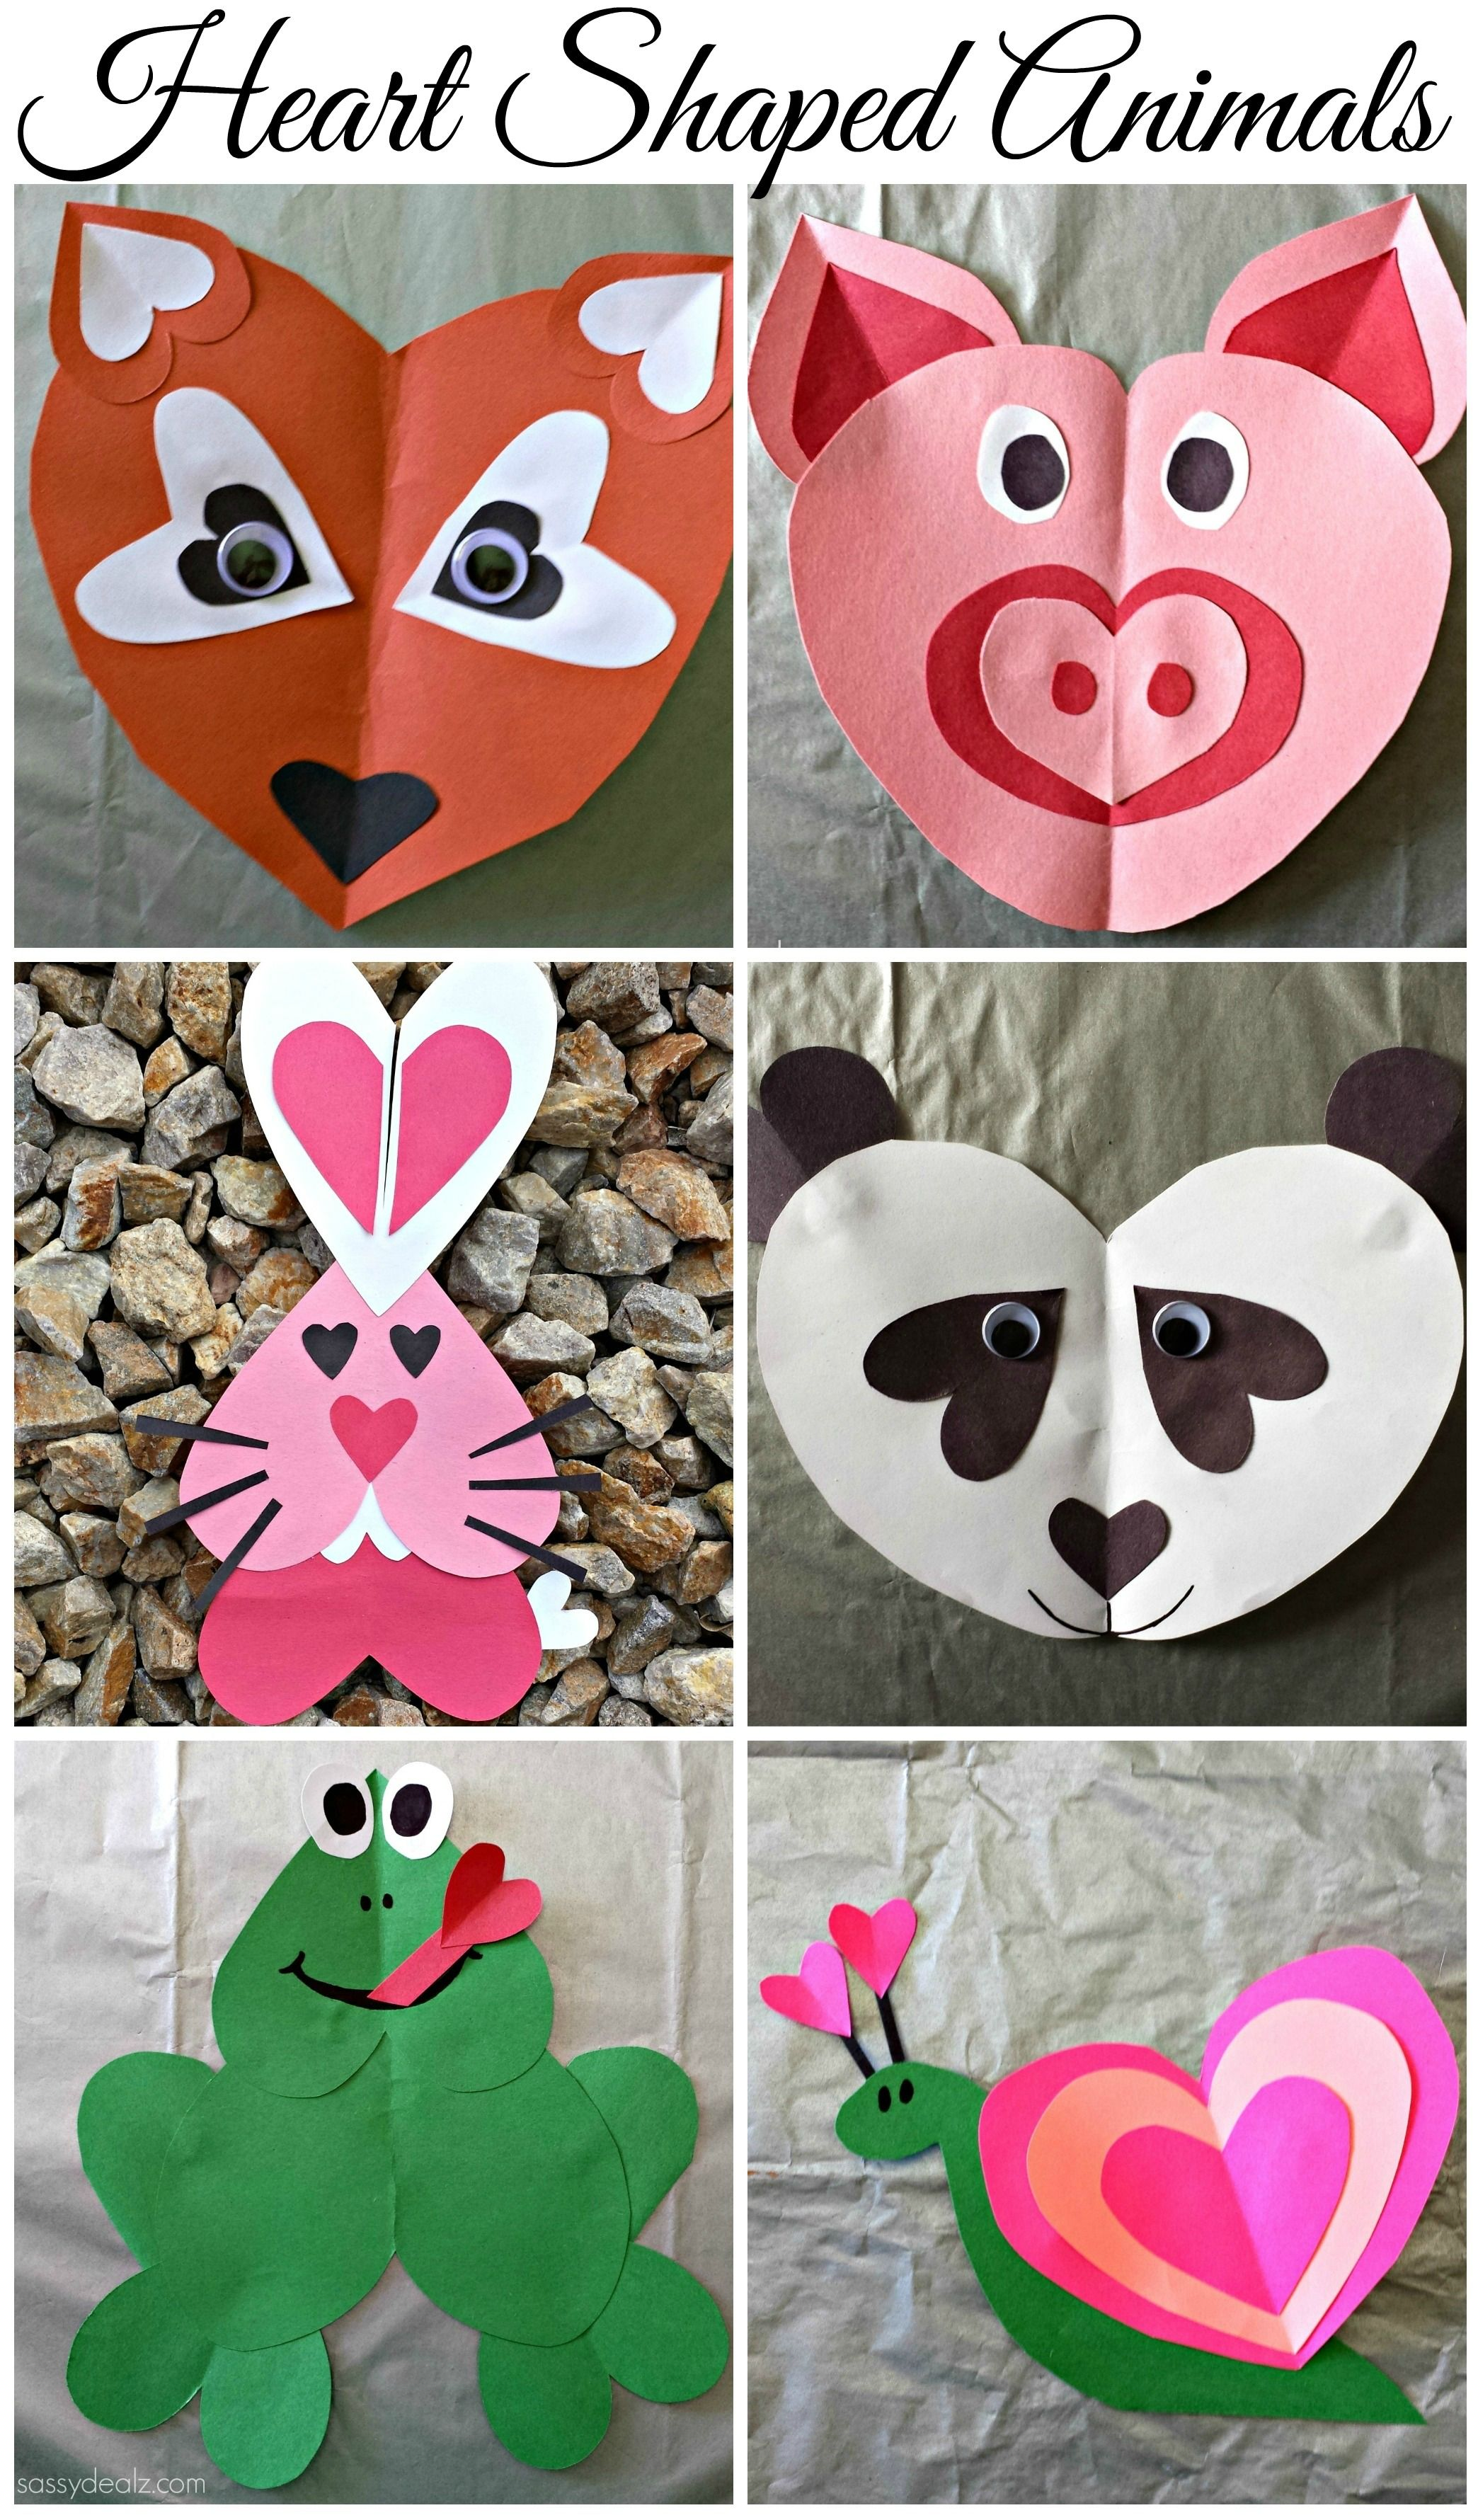 Heart Shaped Crafts : heart, shaped, crafts, Valentine's, Heart, Shaped, Animal, Crafts, Kids,, Valentines, Preschool